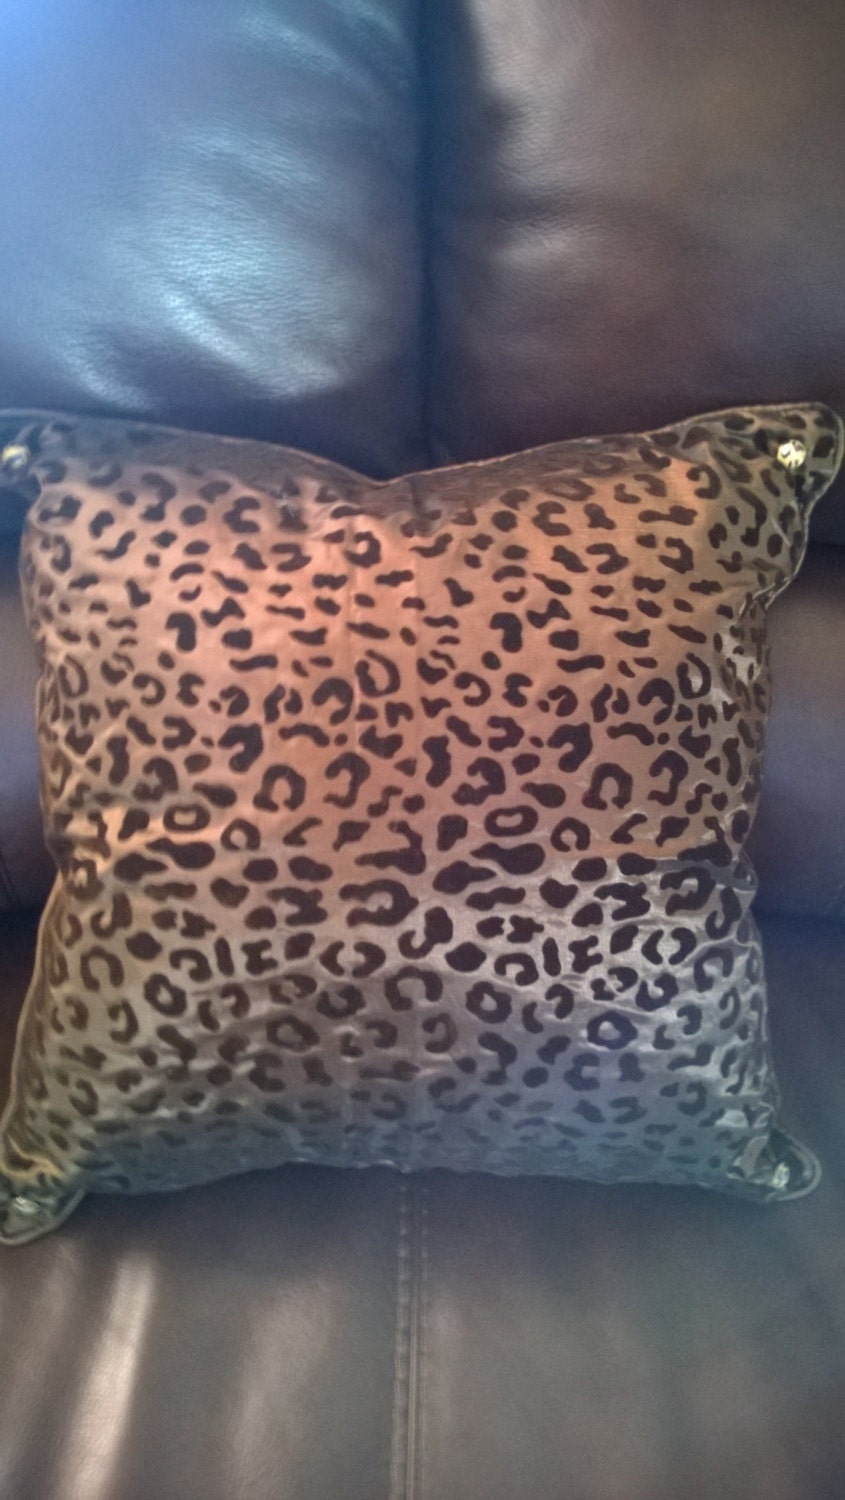 16 X 16 Flocked Leopard Print Decorative Pillows by DesertCrafters